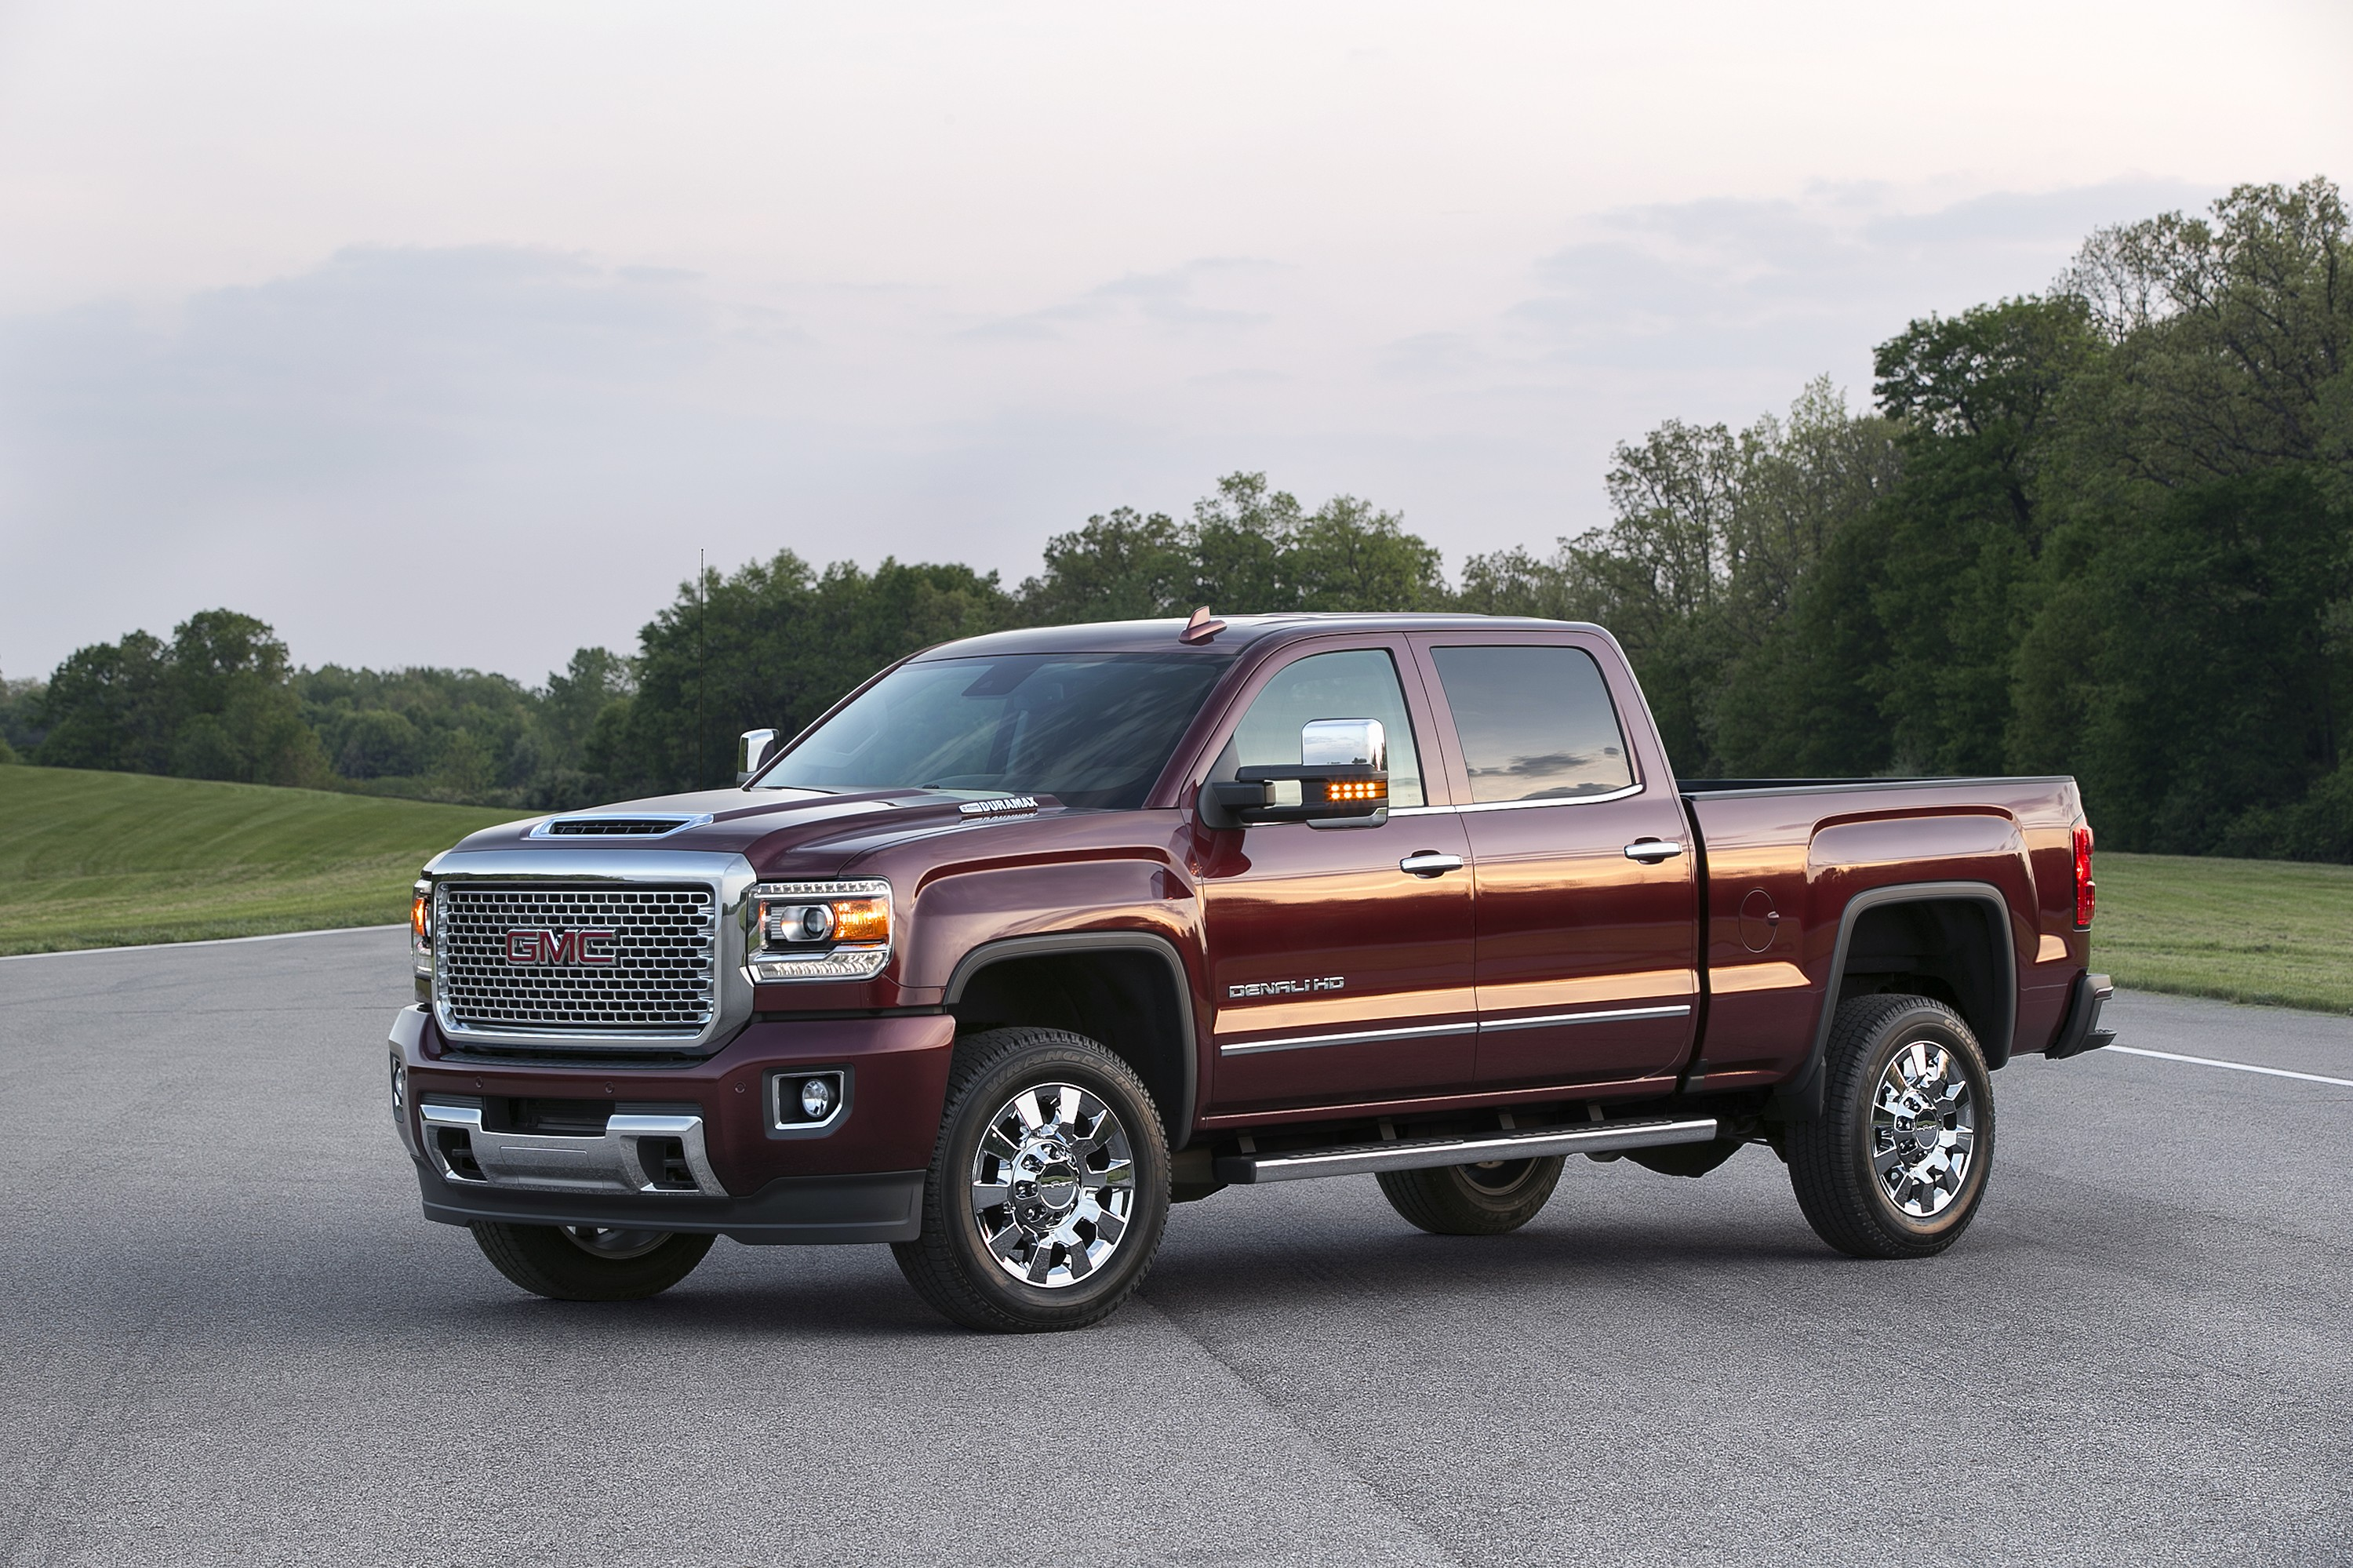 2017 gmc sierra denali 2500 heavy duty hides something under its hood scoop autoevolution. Black Bedroom Furniture Sets. Home Design Ideas